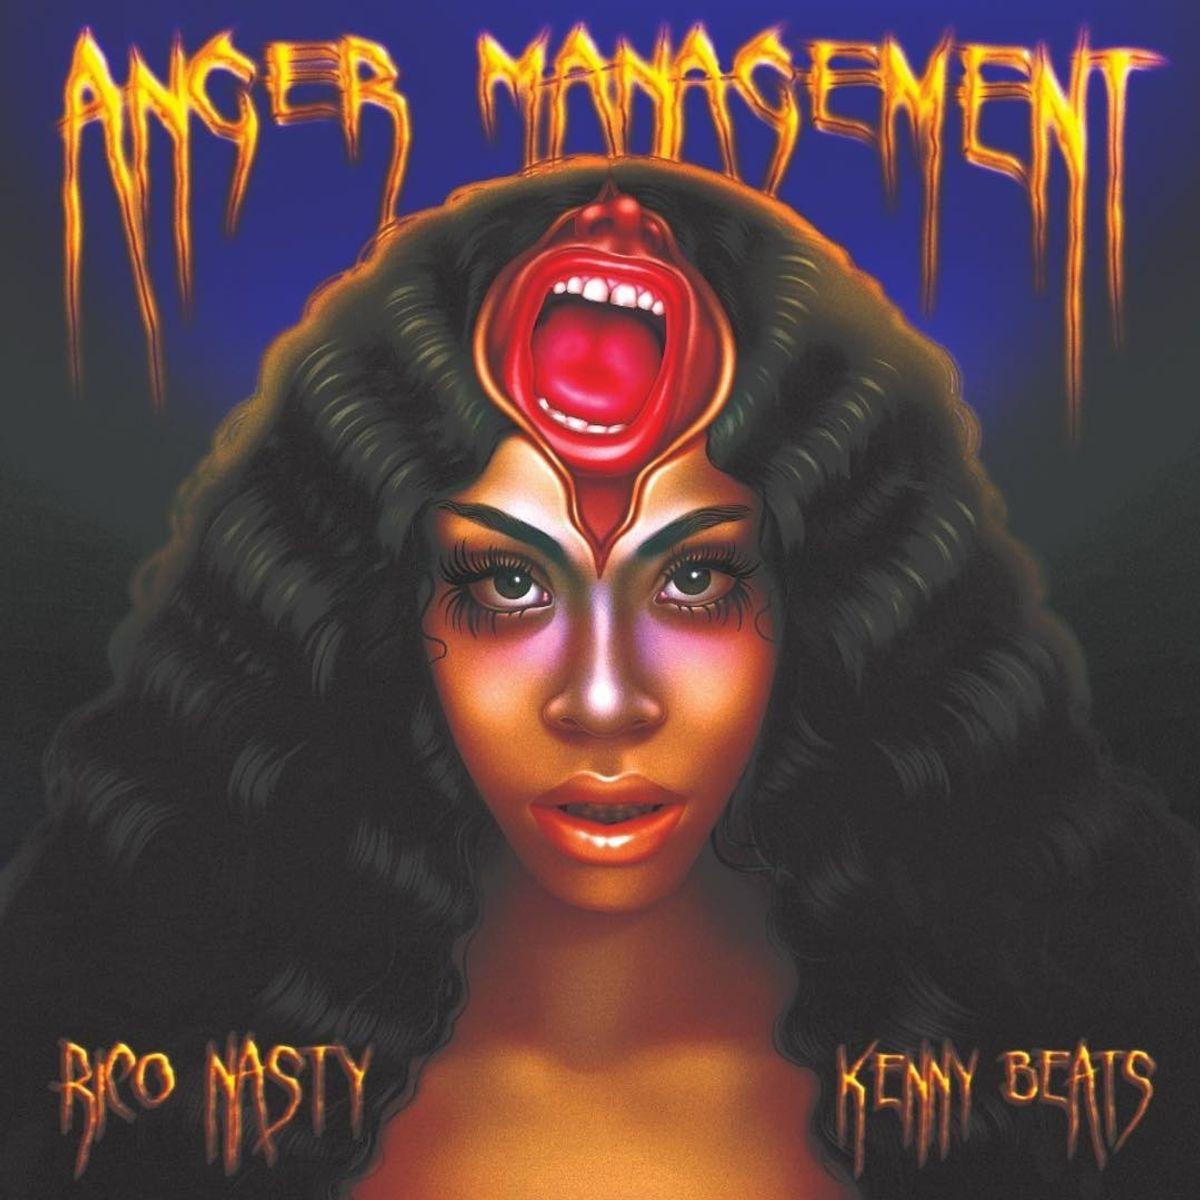 Rico Nasty and Kenny Beats Ignite on 'Anger Management'